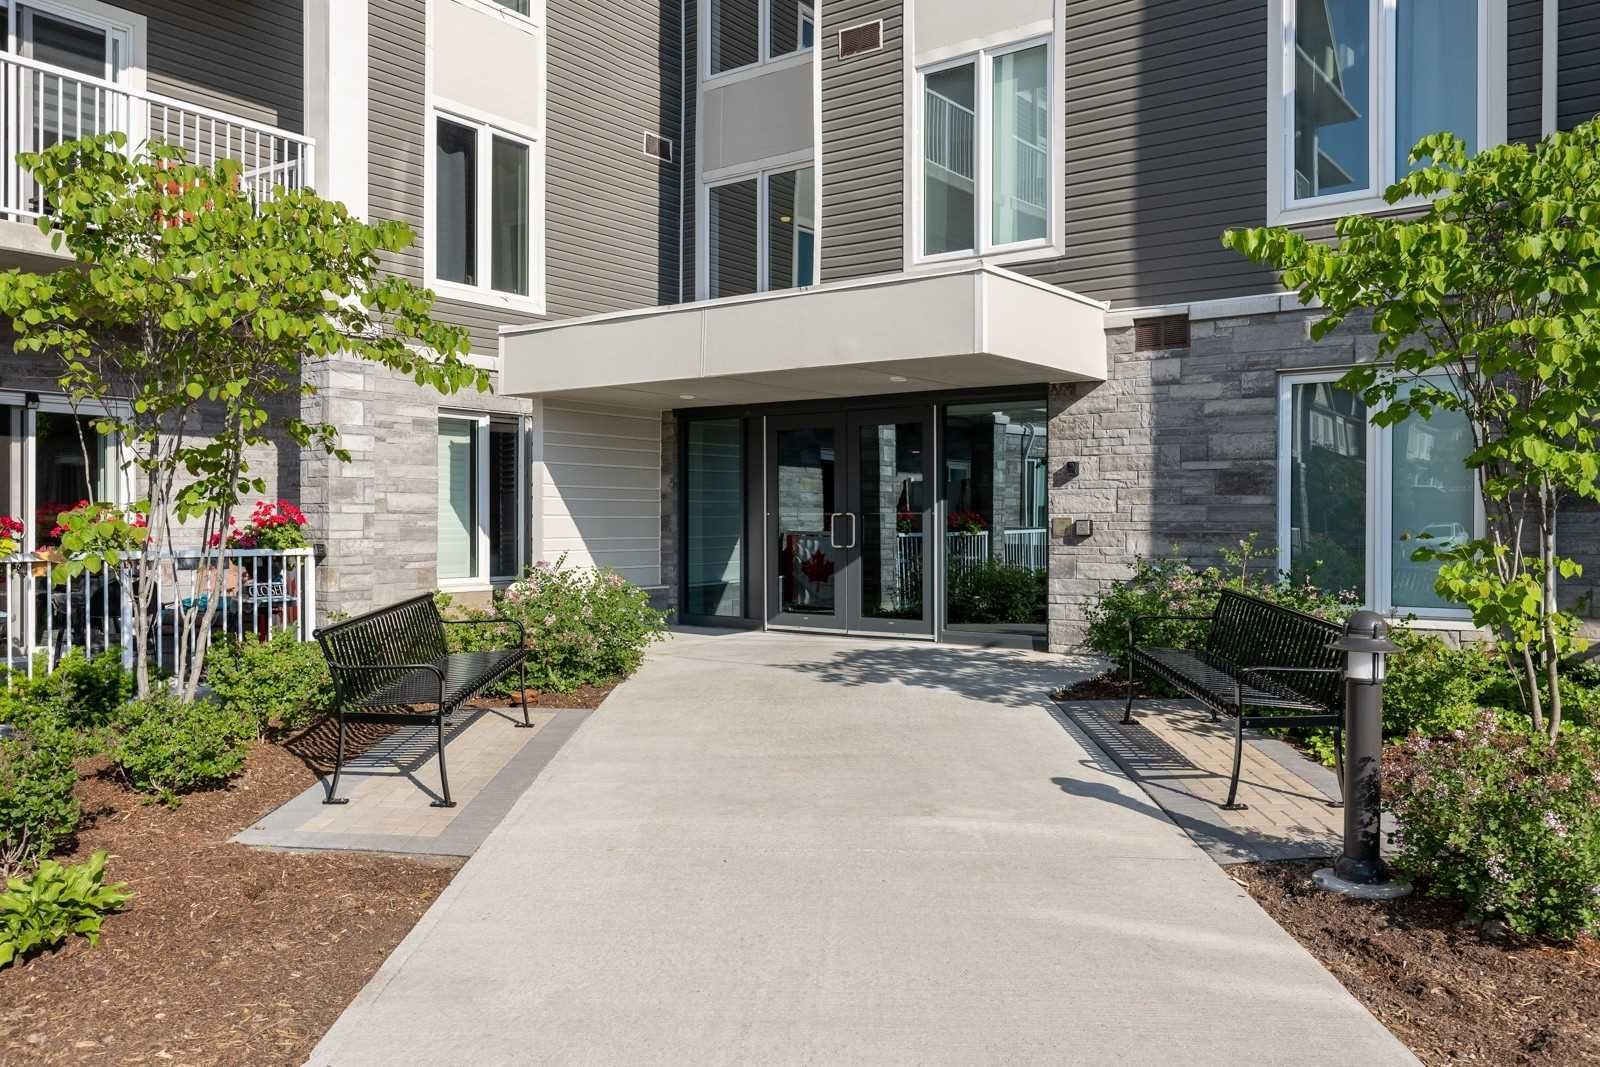 290 Liberty St N, unit 114 for sale in Toronto - image #1